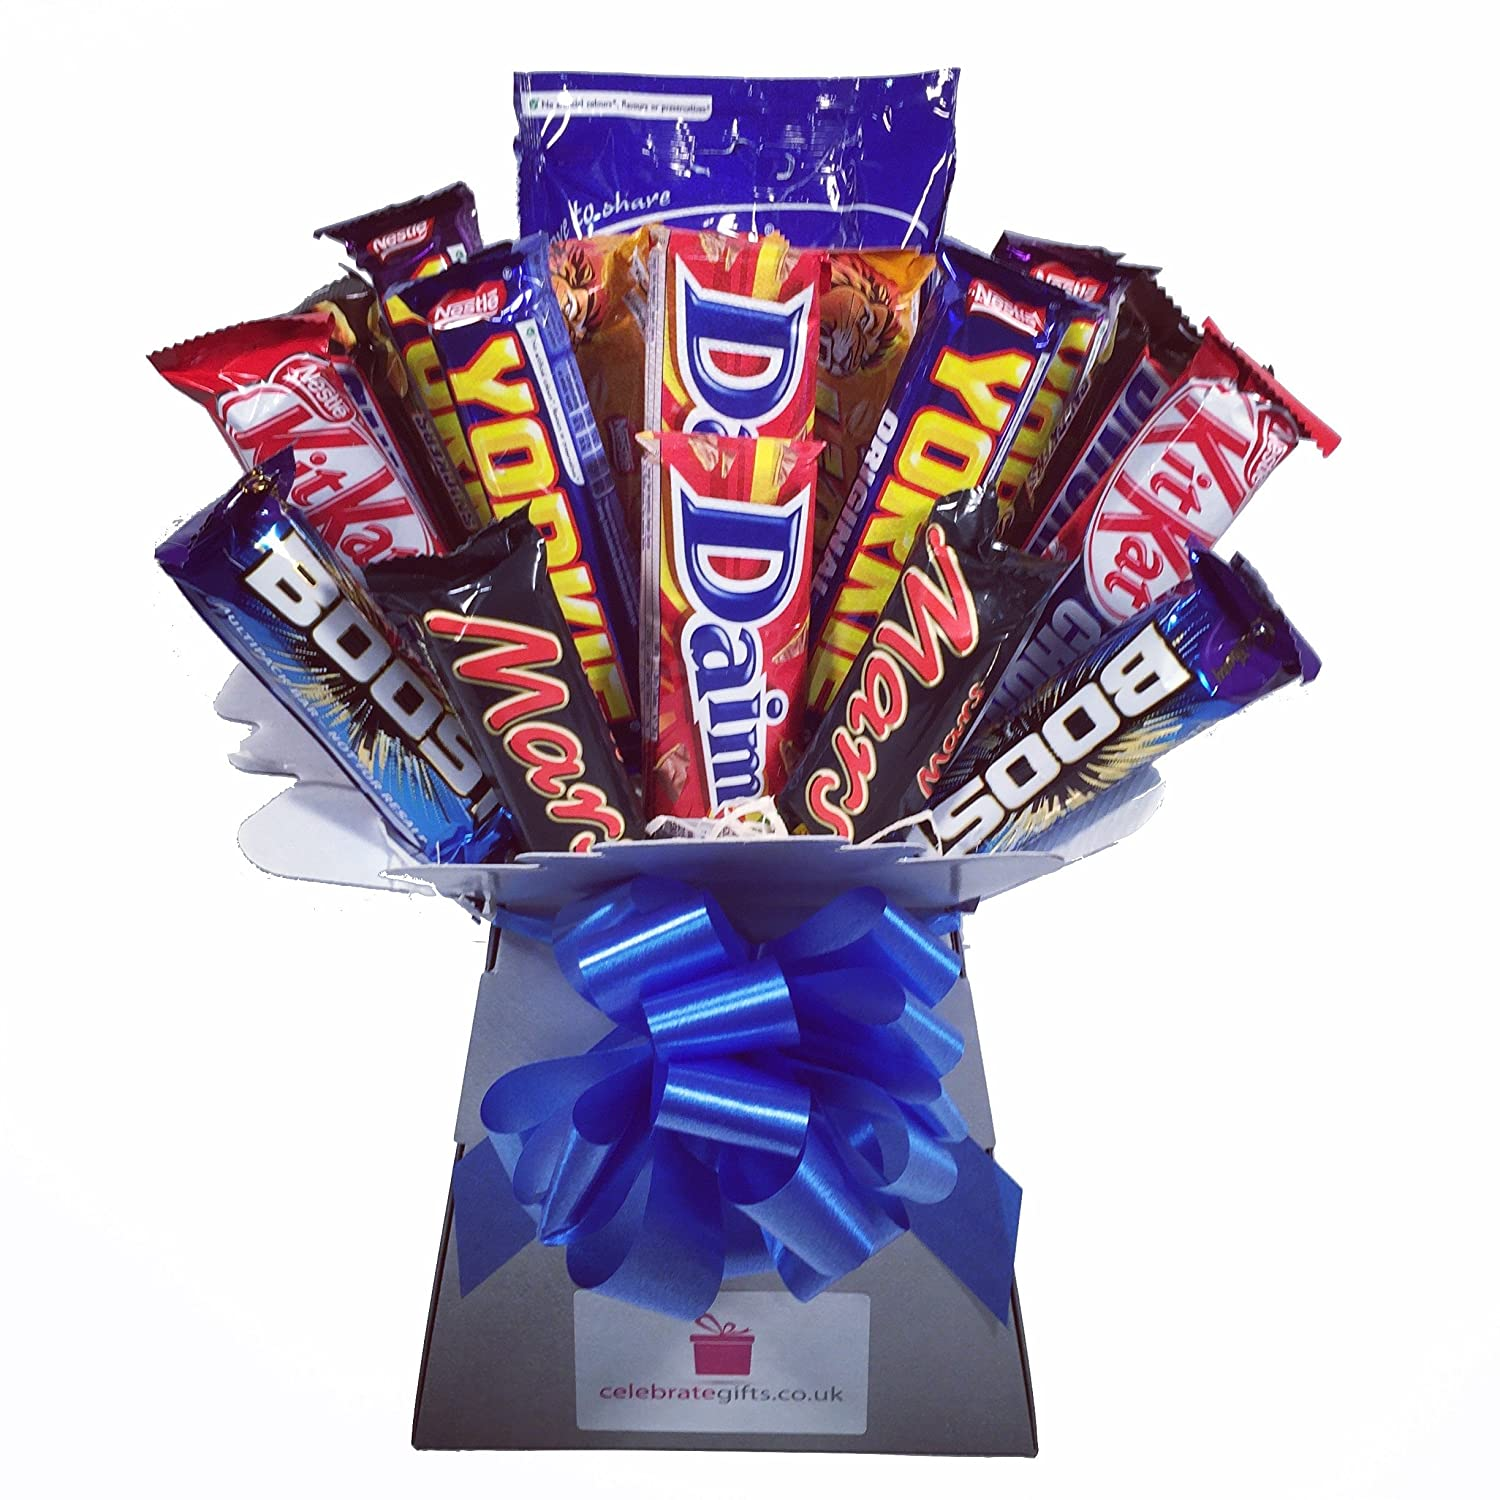 Mens chocolate bouquet sweet hamper tree perfect gift amazon mens chocolate bouquet sweet hamper tree perfect gift amazon grocery izmirmasajfo Gallery